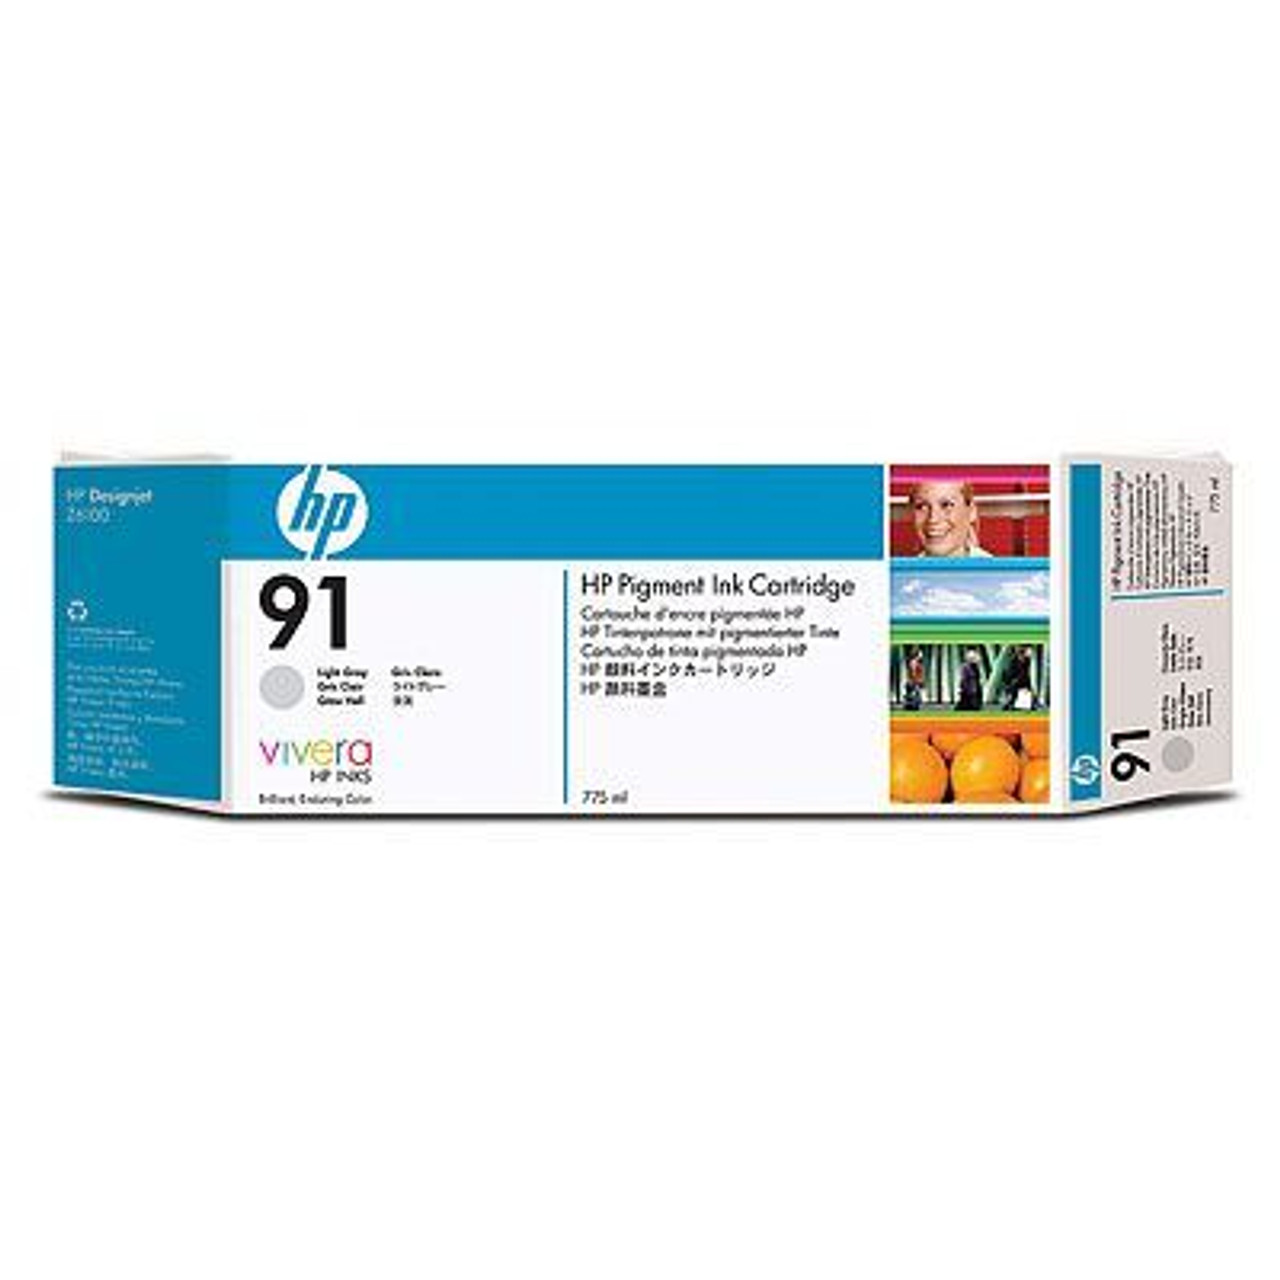 Image for HP 91 775ml Print cartridge 1 x light grey (C9466A) CX Computer Superstore